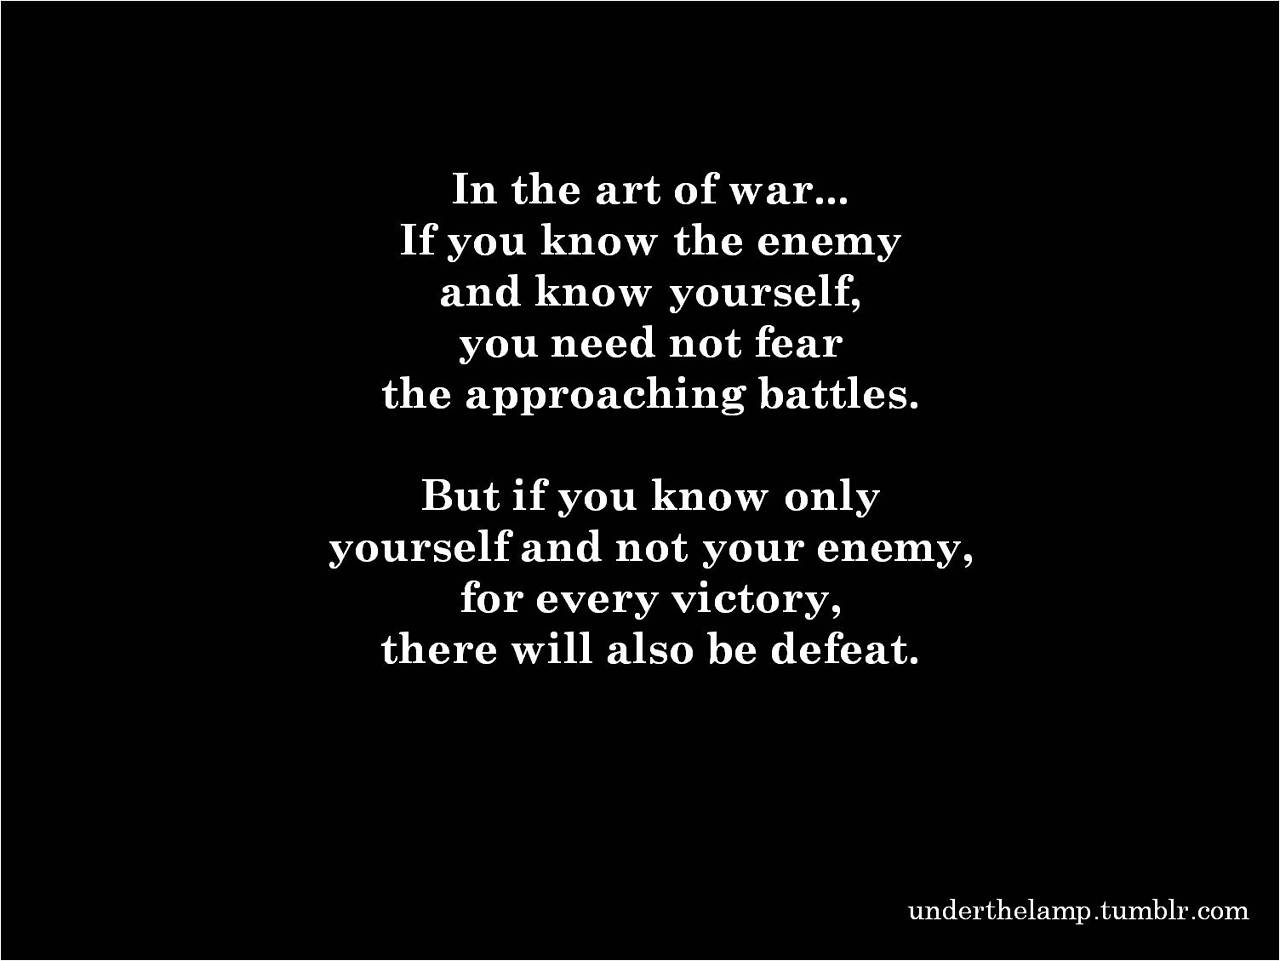 life is not victory but battle essay There's an enemy living between your own two ears if you  but here's the thing:  you might win a hard fought battle, but not the war life is.